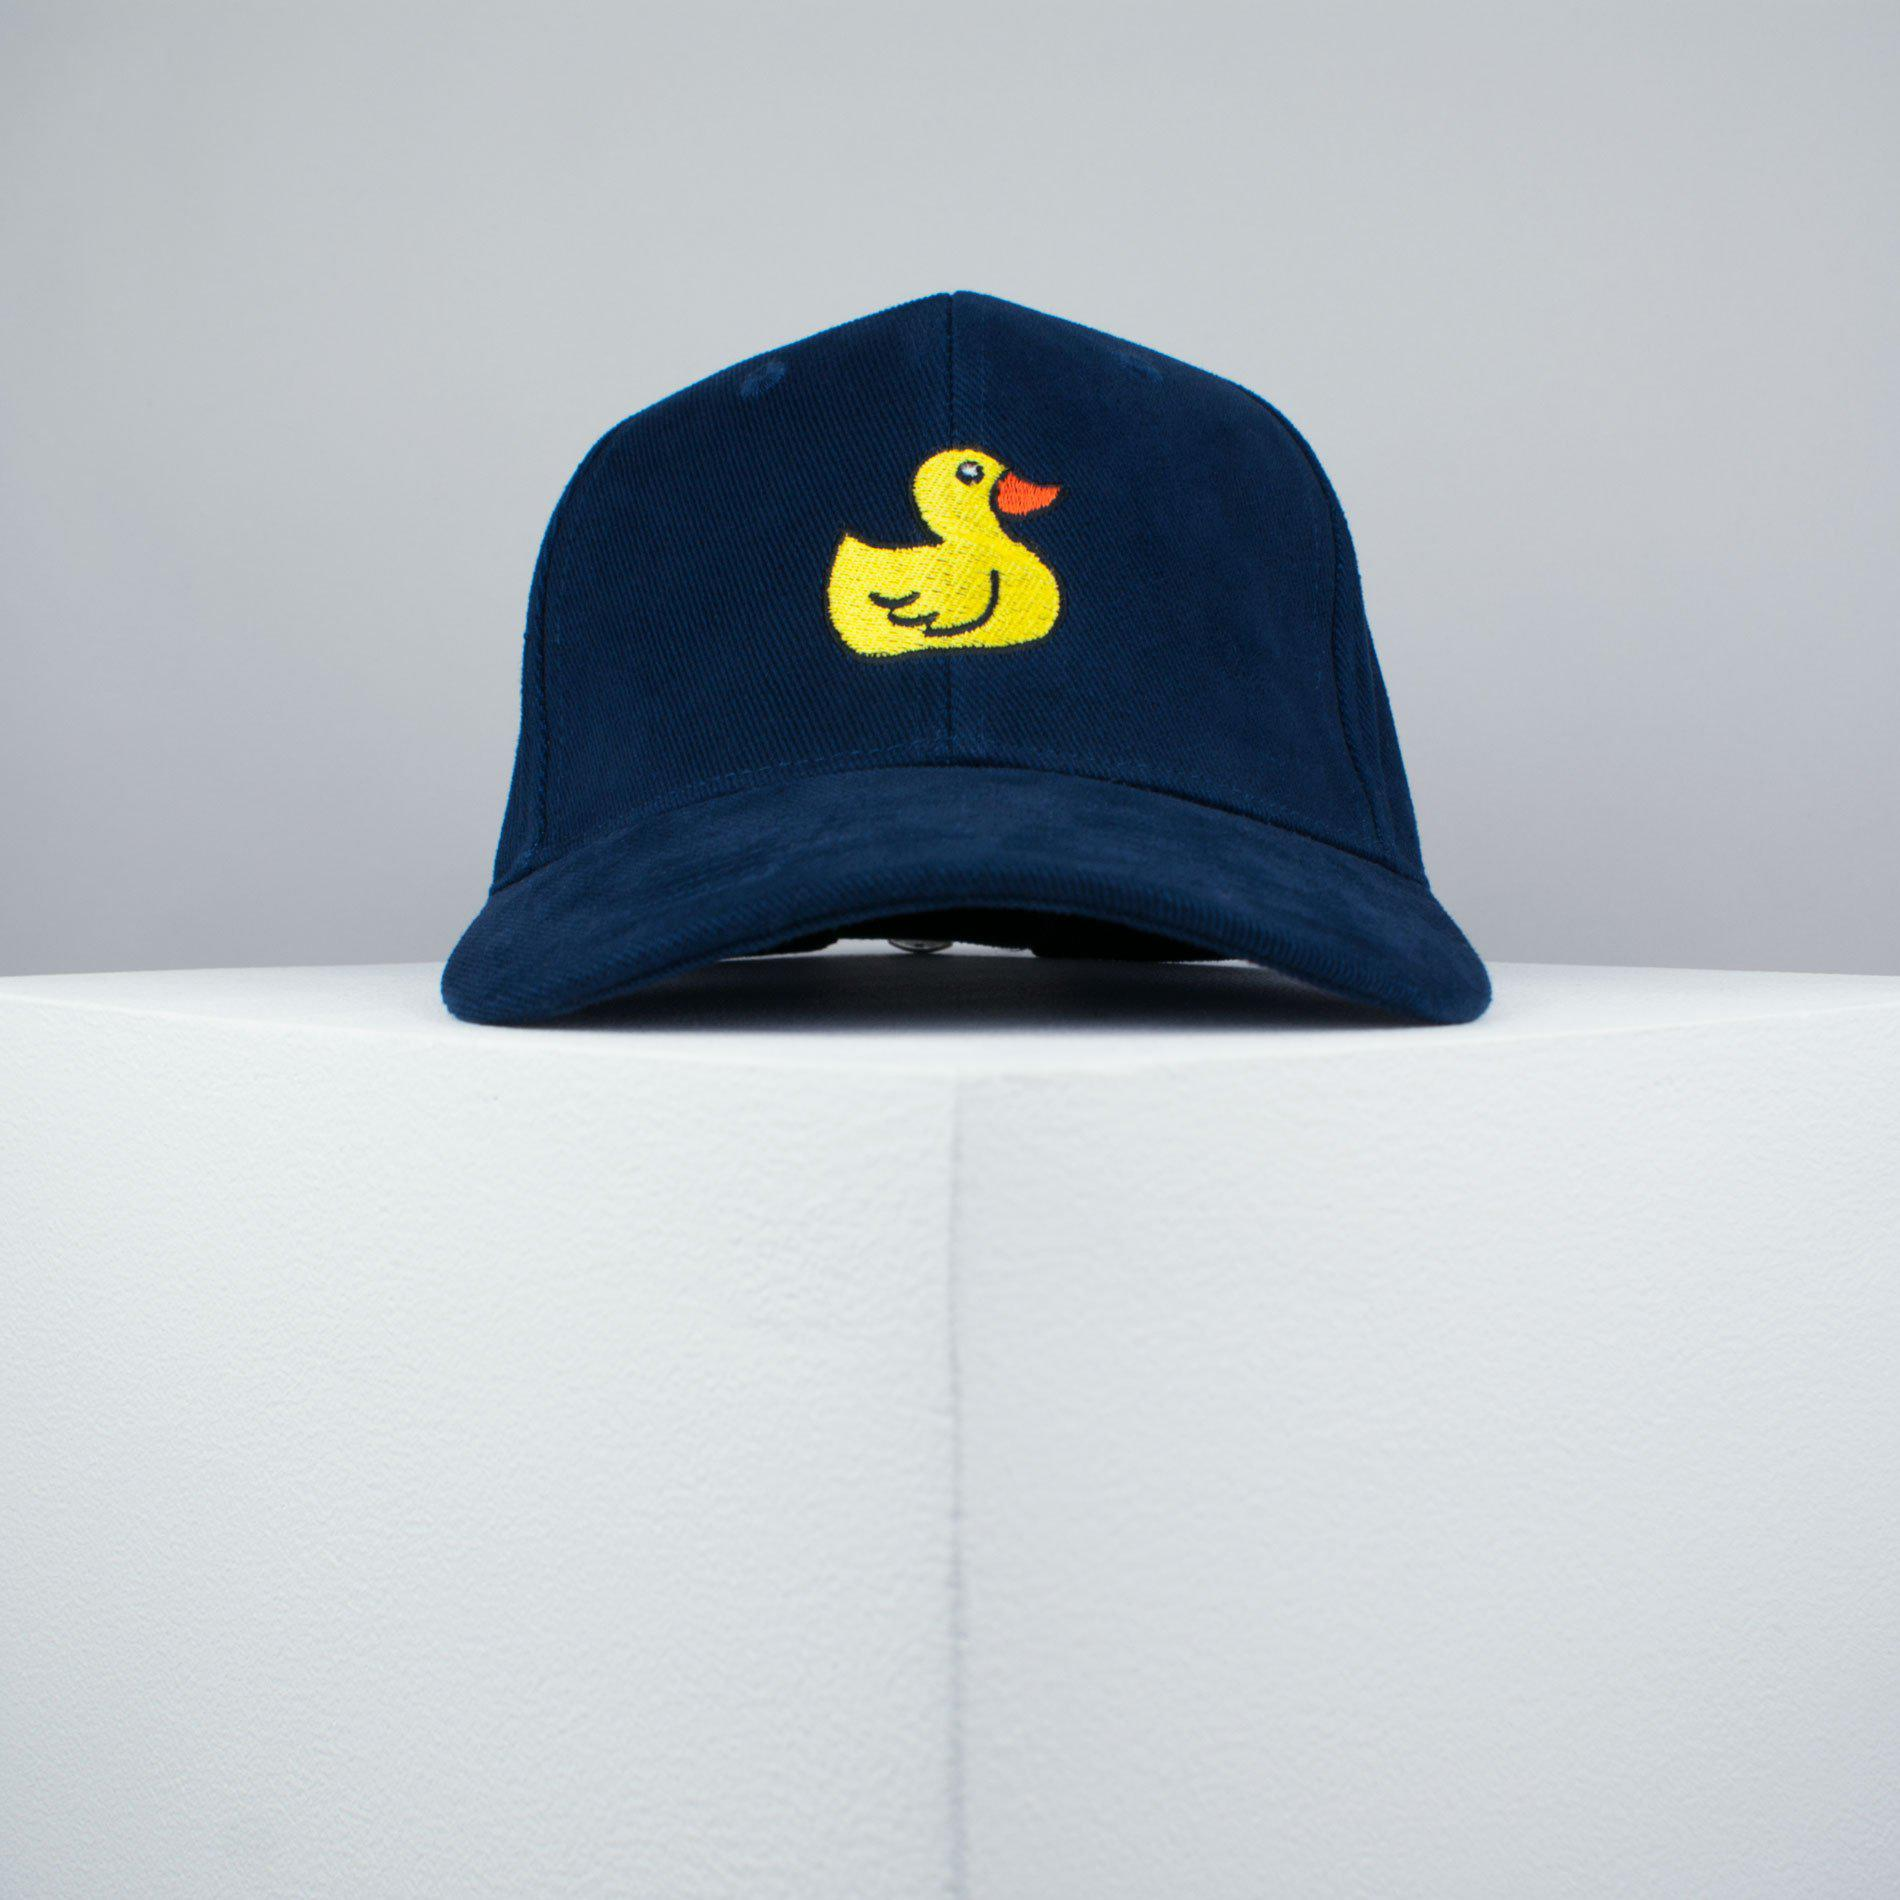 Rubber Duck Baseball Cap Hatty Hats Embroidery